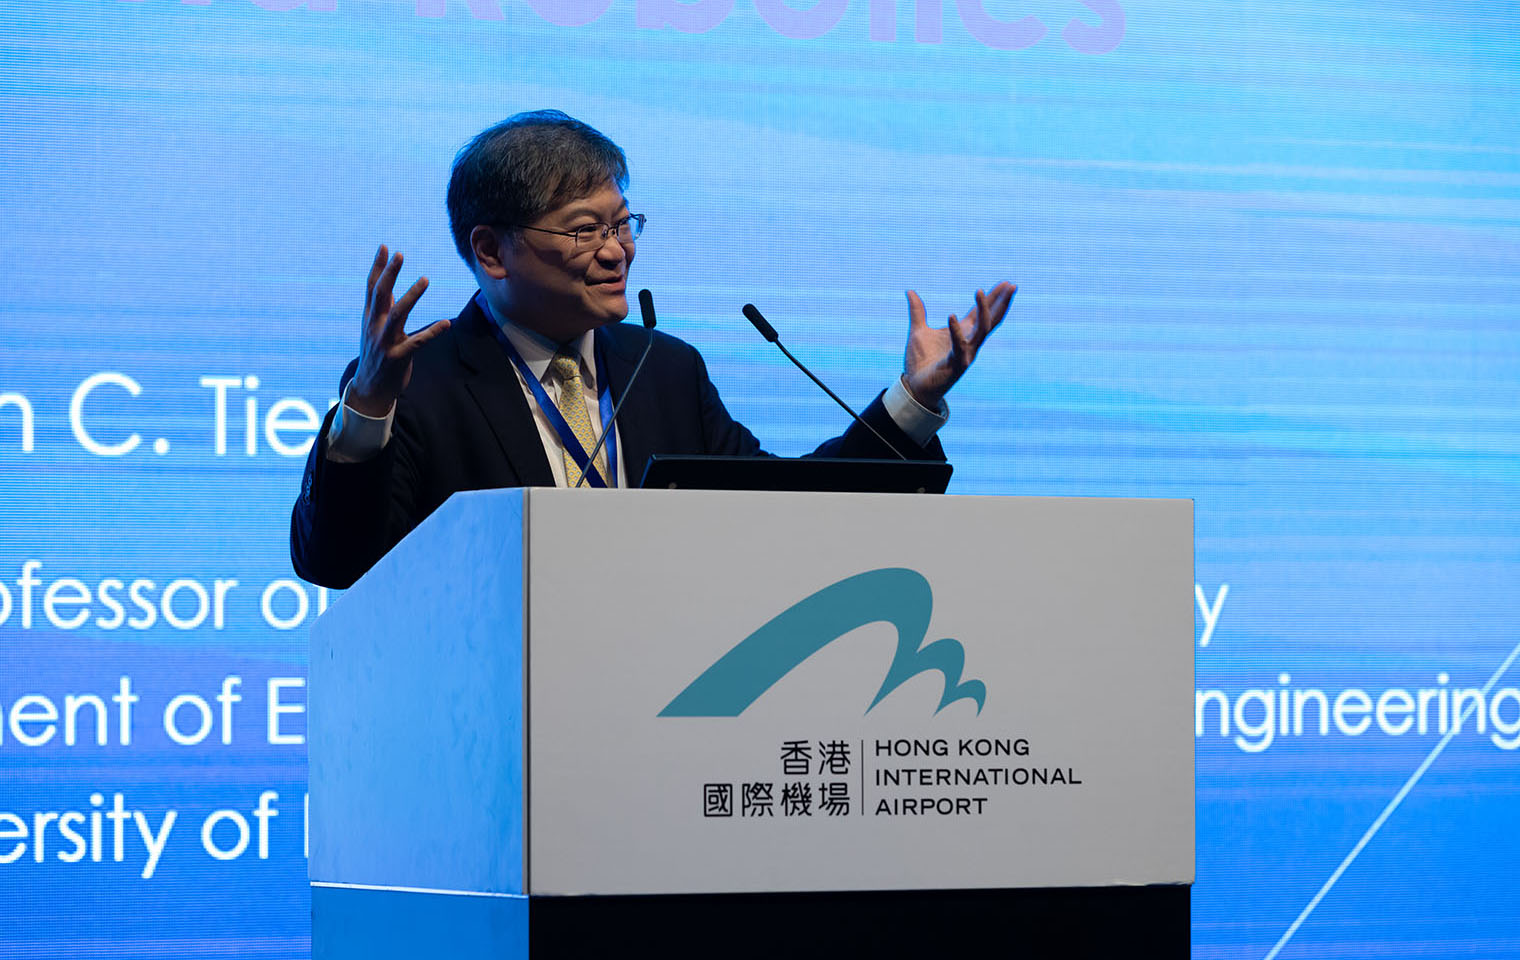 <strong>Professor Norman Tien</strong><br>AI and Robotics Alliance of Hong Kong